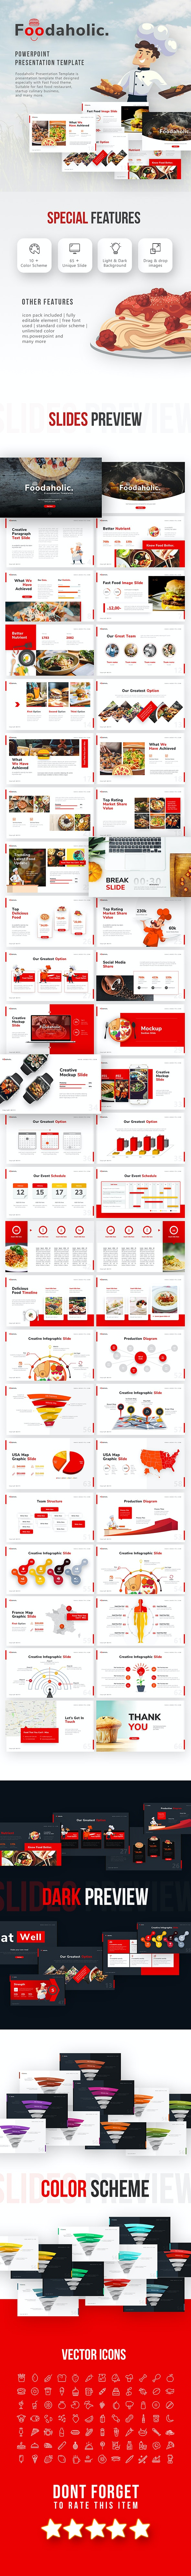 Foodaholic - Culinary PowerPoint Template - PowerPoint Templates Presentation Templates